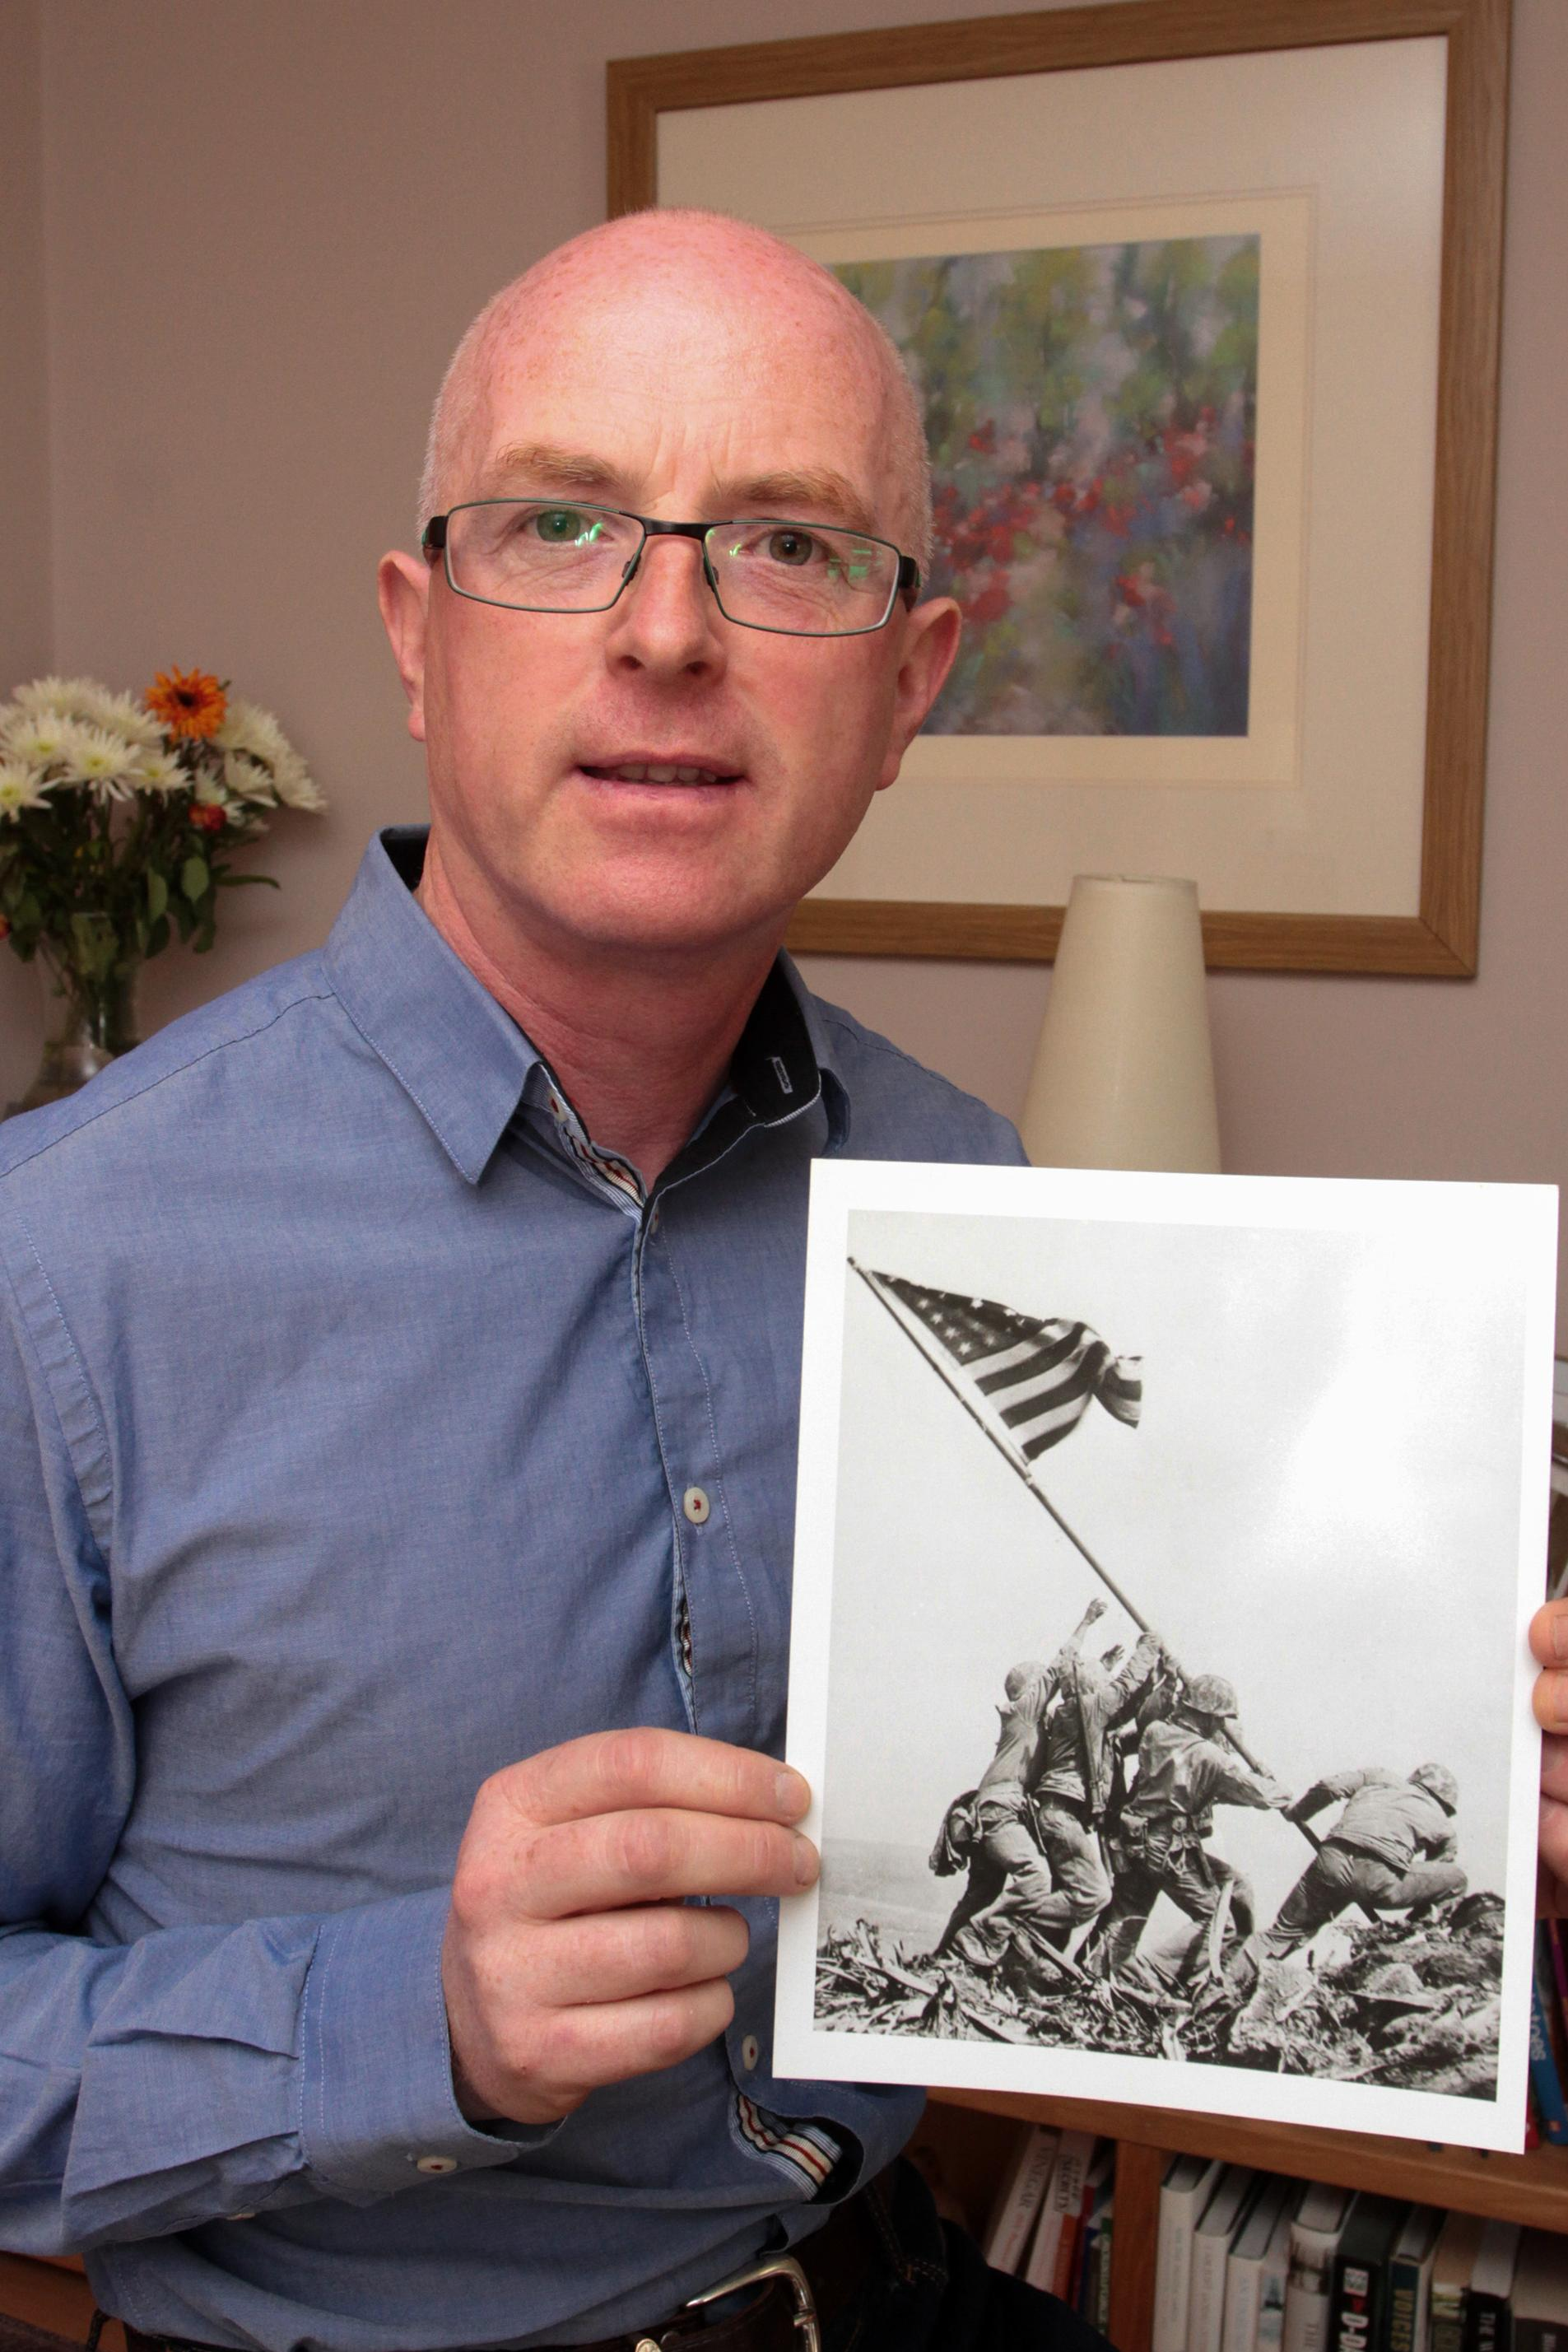 STEPHEN FOLEY:  an amateur Irish historian, on disability leave, leads the Marine Corps to the stunning renaming of the participants in the iconic Joe Rosenthal picture of the second flag raising on Iwo Jima